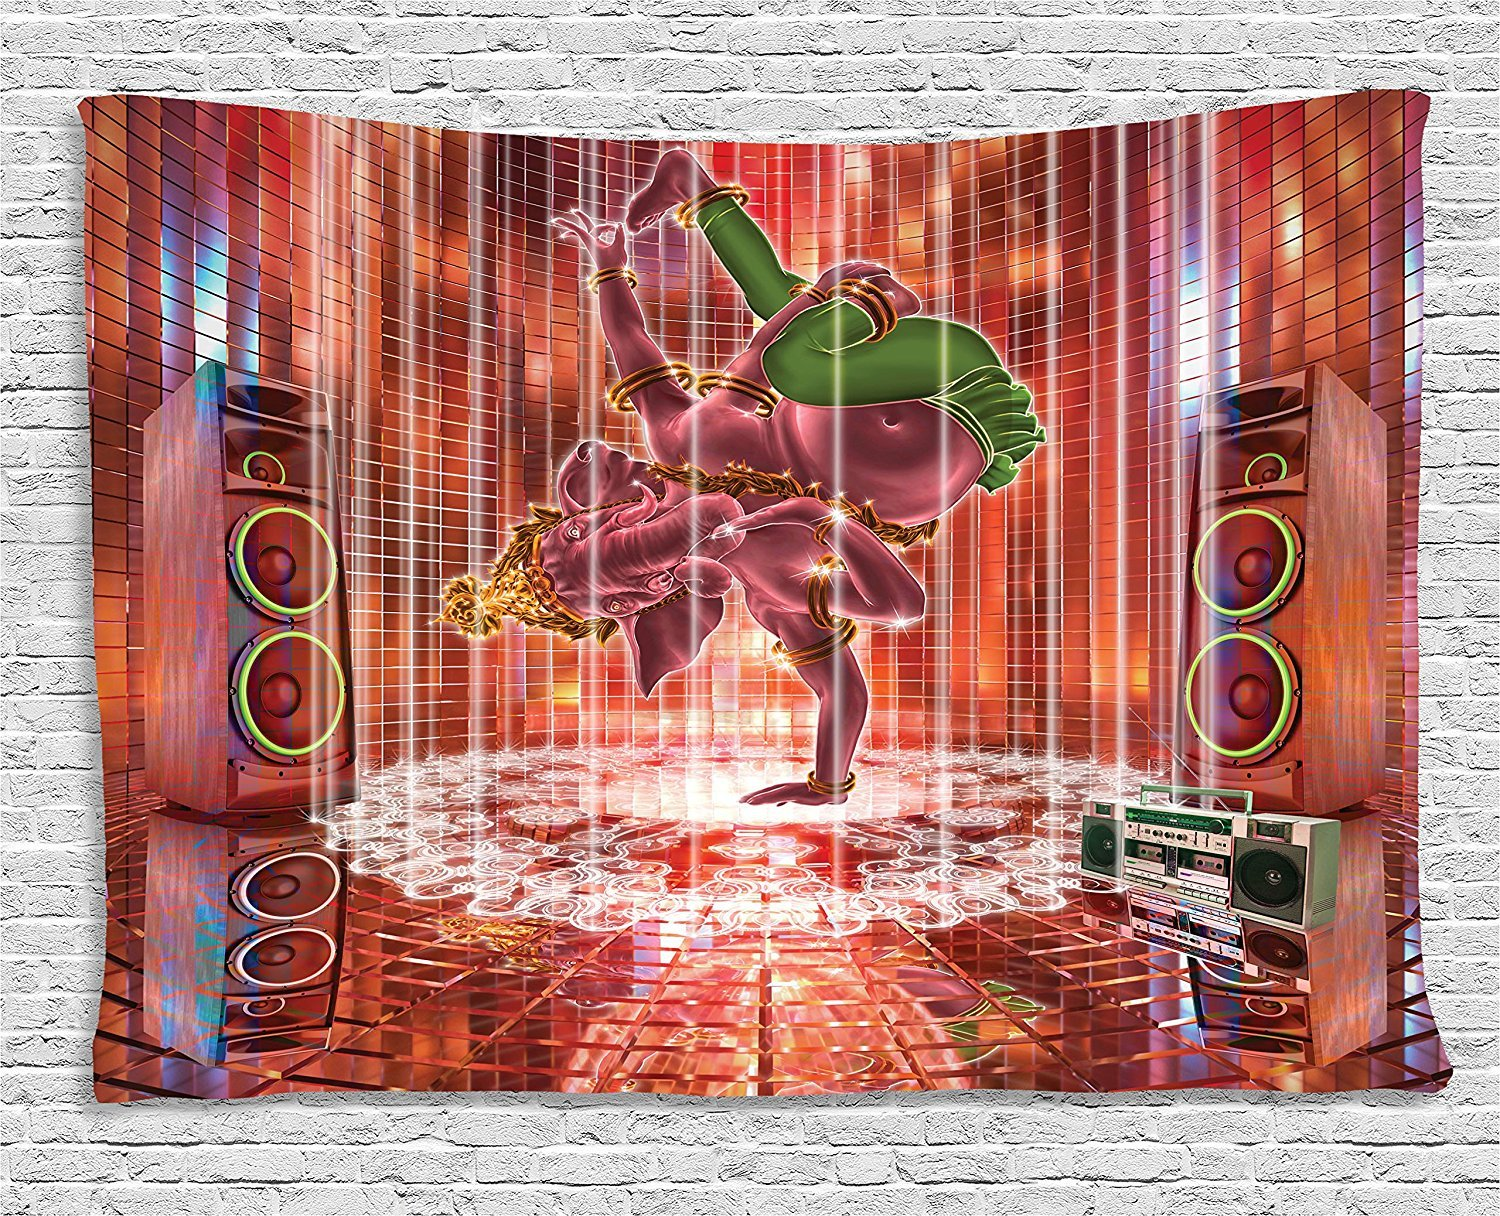 asddcdfdd Animal Decor Tapestry, Ethnic Elephant Dancing Rocking the Dance Floor with its Meditating Moves Print, Wall Hanging for Bedroom Living Room Dorm, 80 W X 60 L Inches, Multi